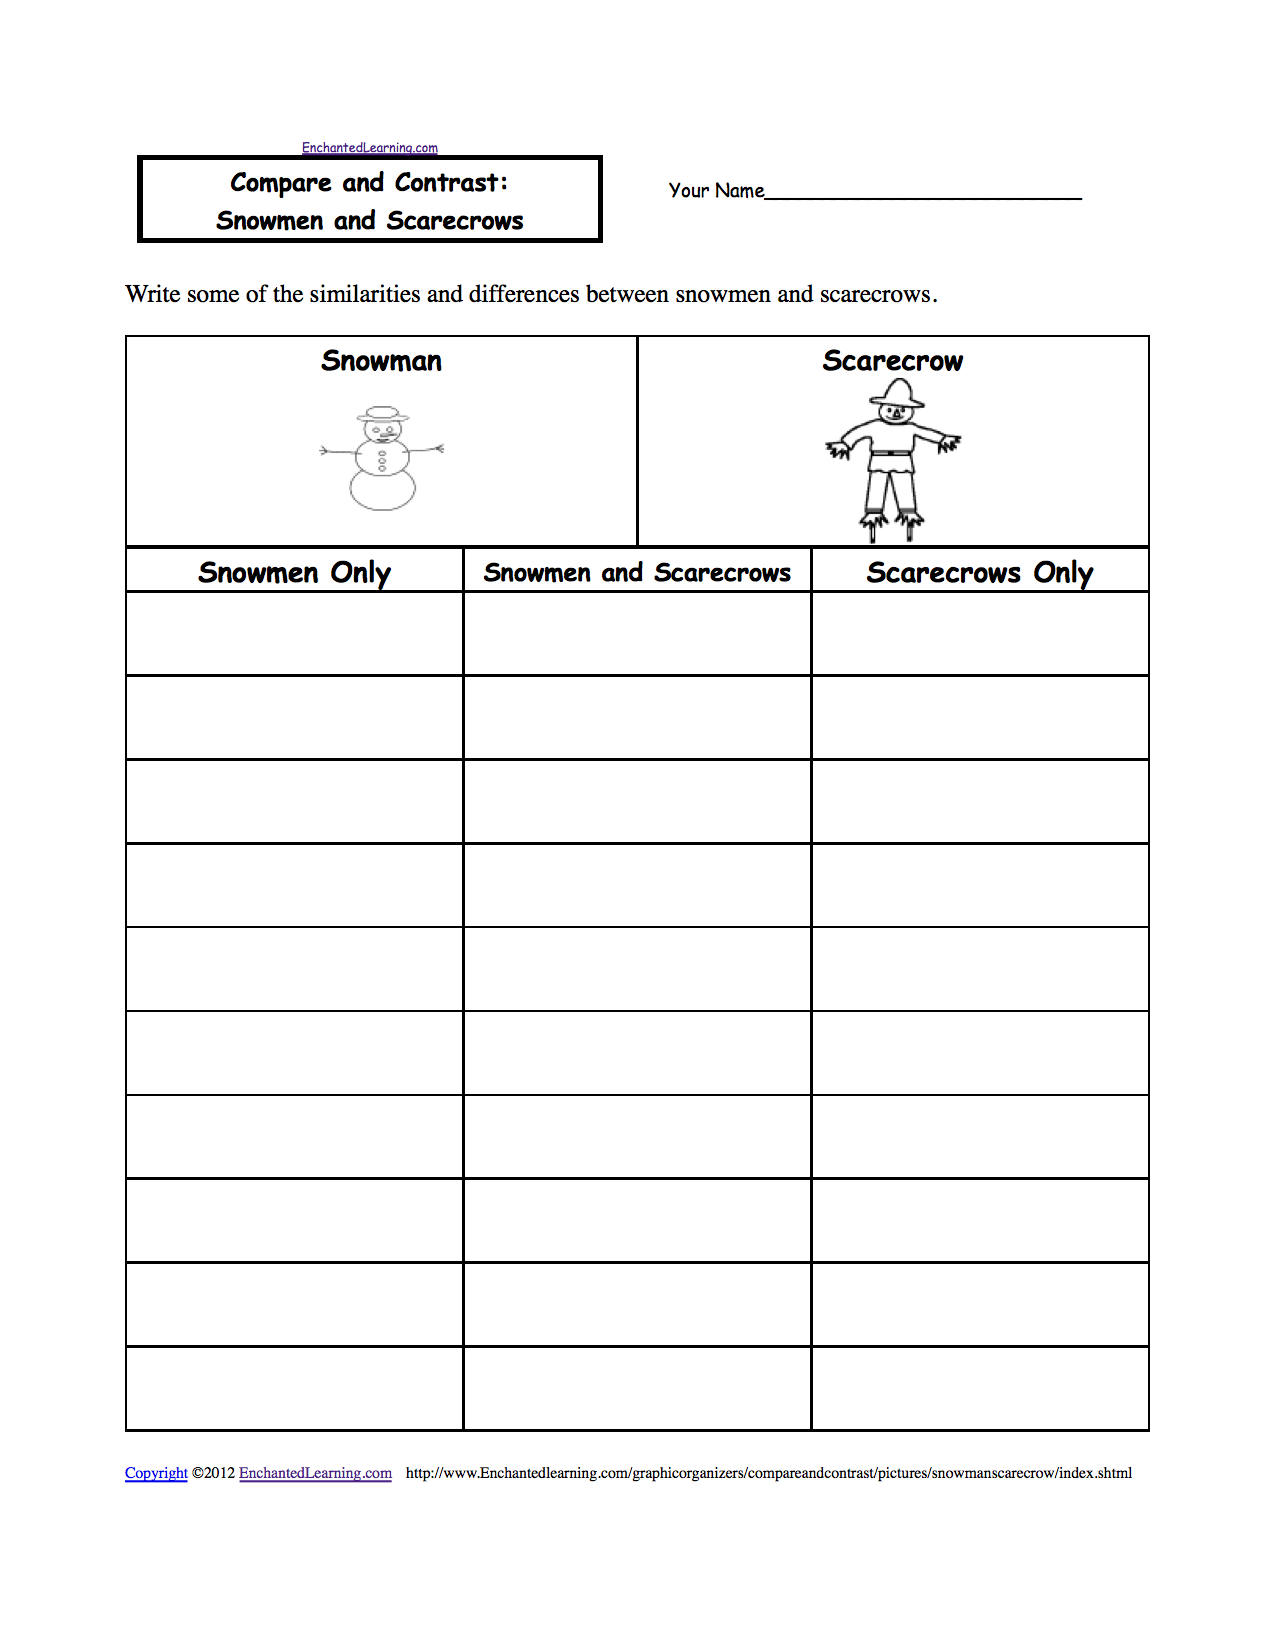 Worksheet Compare And Contrast Worksheets compare and contrast worksheets to print enchantedlearning com snowmen scarecrows